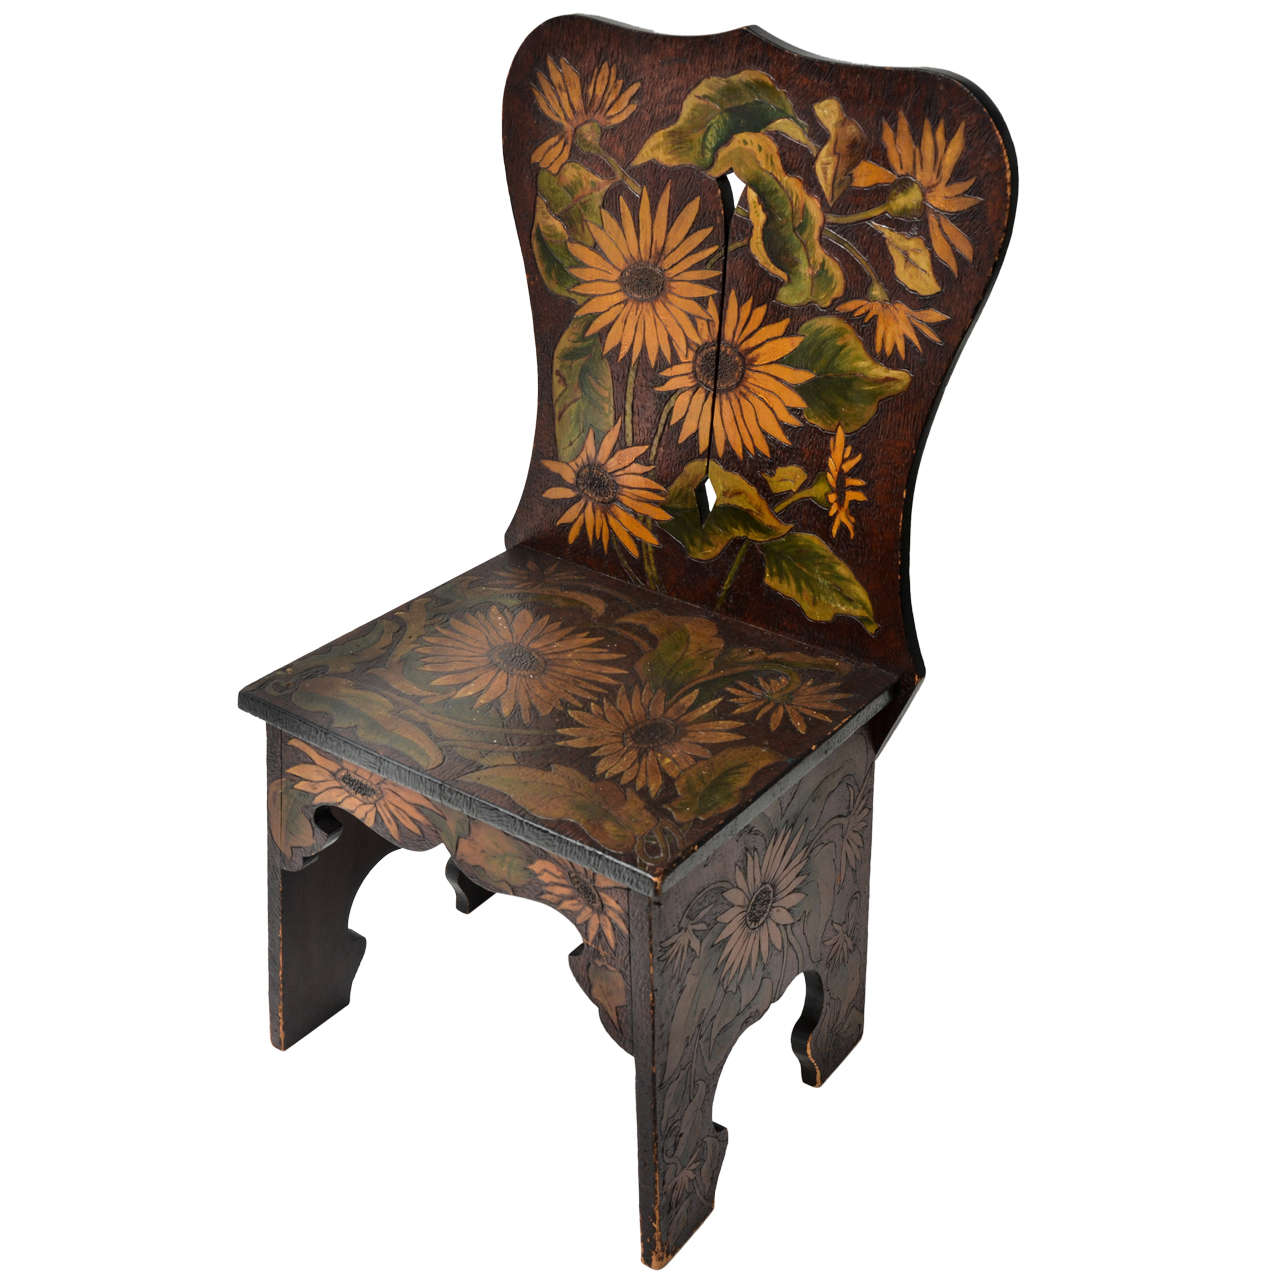 Sculptural Wood Side Chair with Pyrography & Painted Sunflower Ornament 1